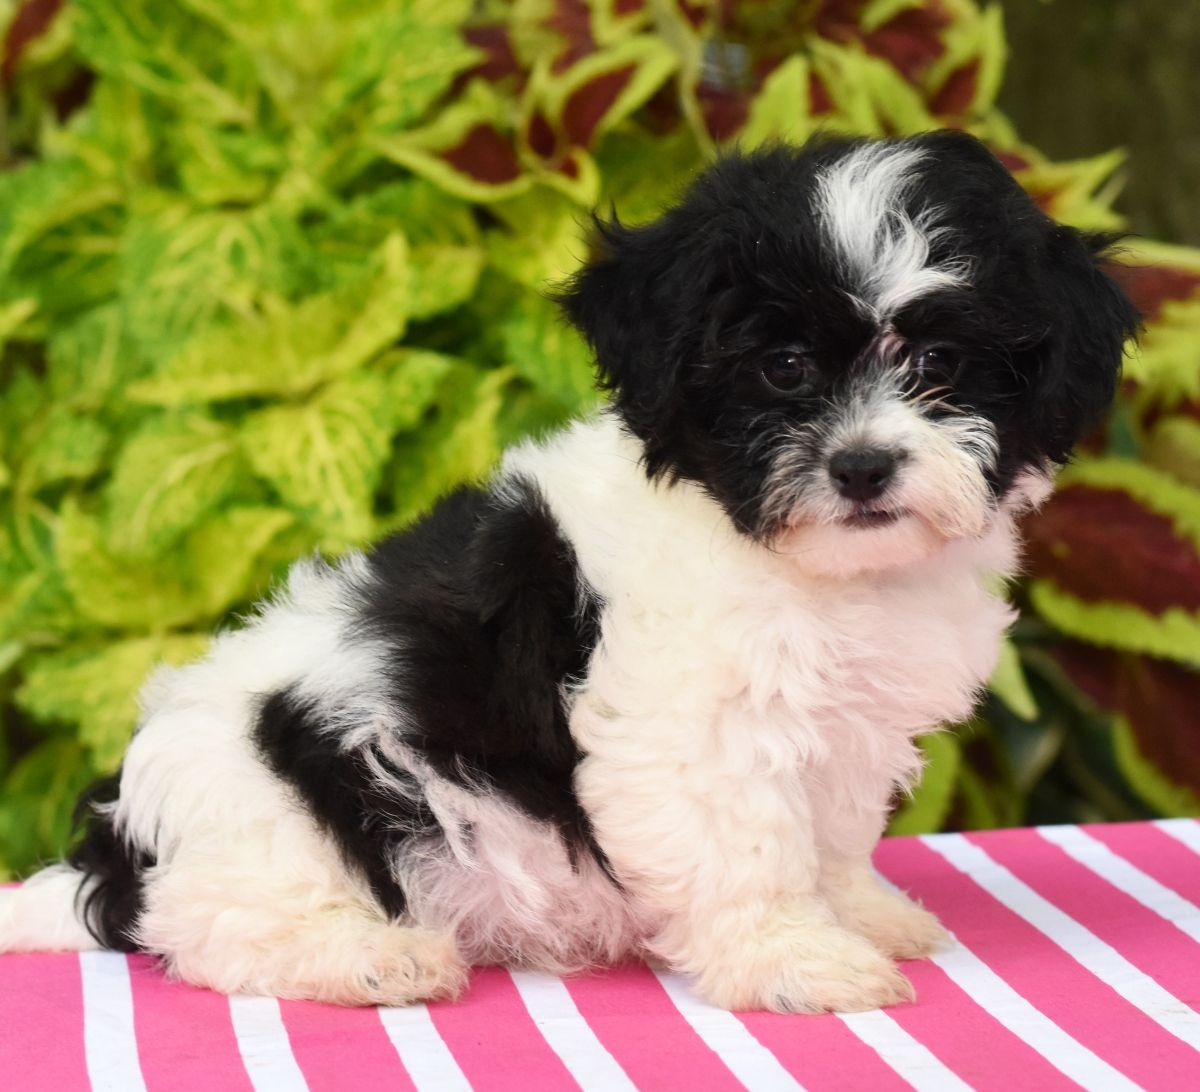 Puppies for Sale Teddy bear puppies, Puppies for sale